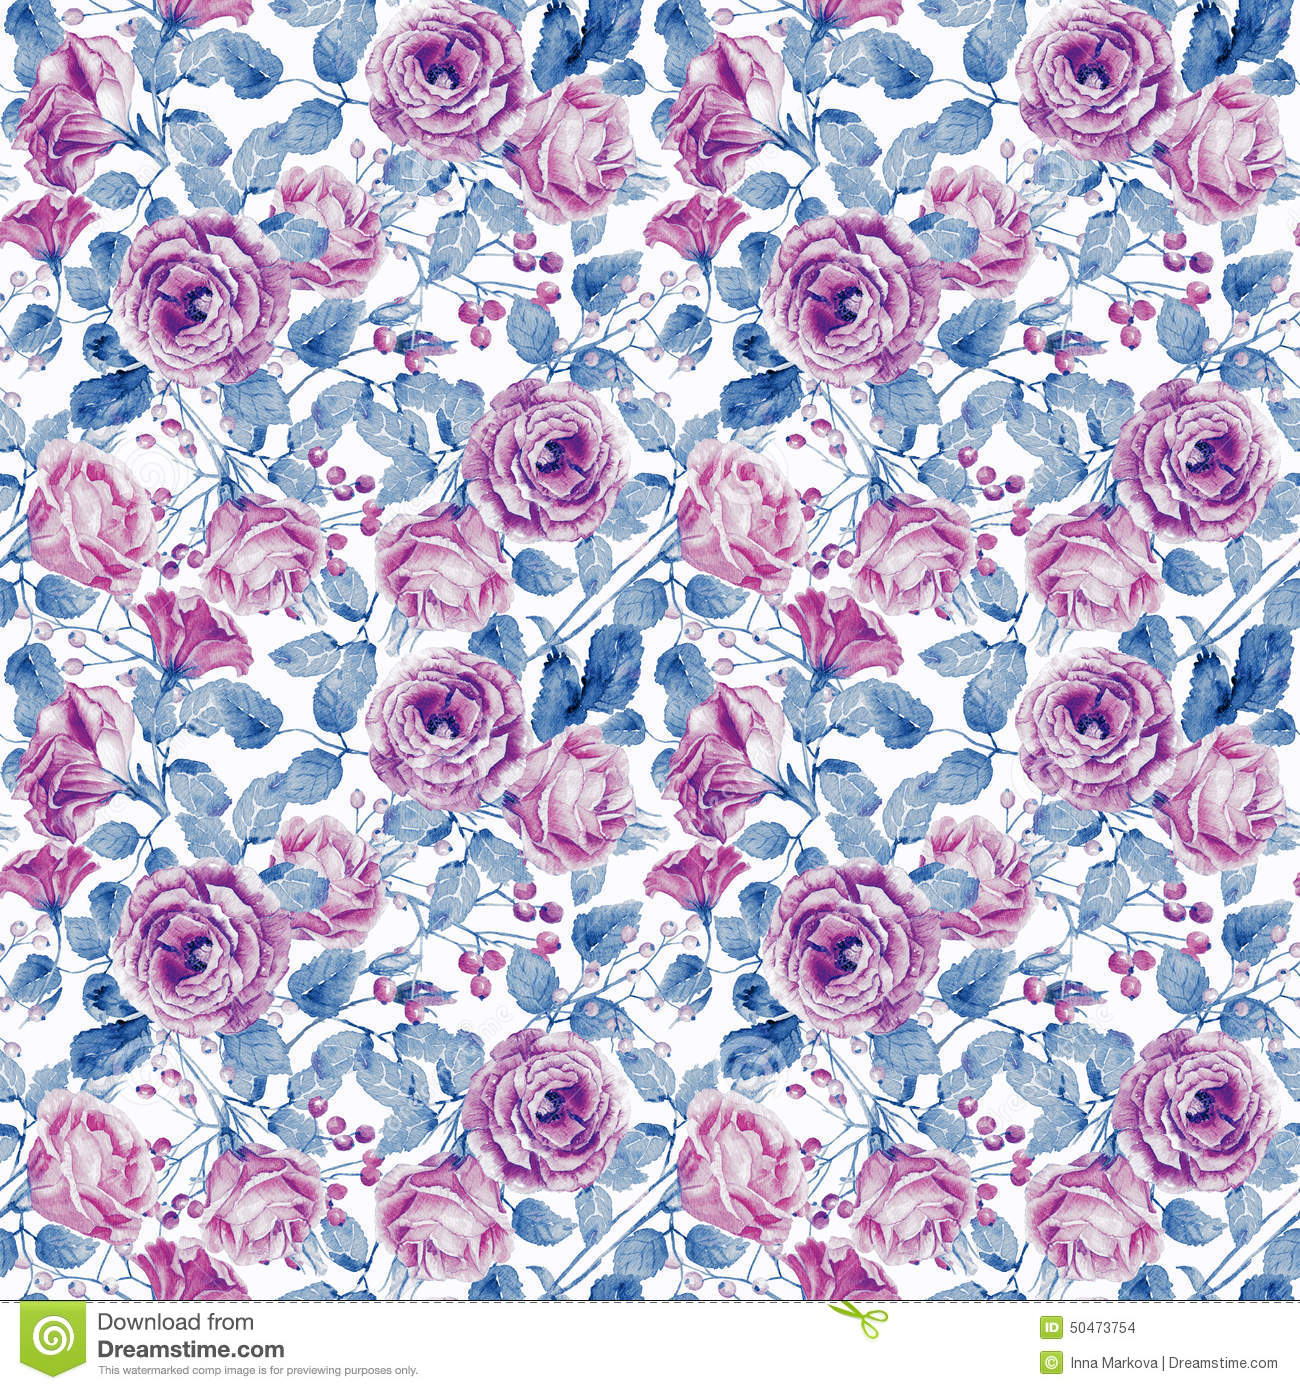 Seamless pattern of watercolor pink roses stock illustration illustration of flowers vintage can be used for gift wrapping paper the background of valentines day birthday mothers day and so on mightylinksfo